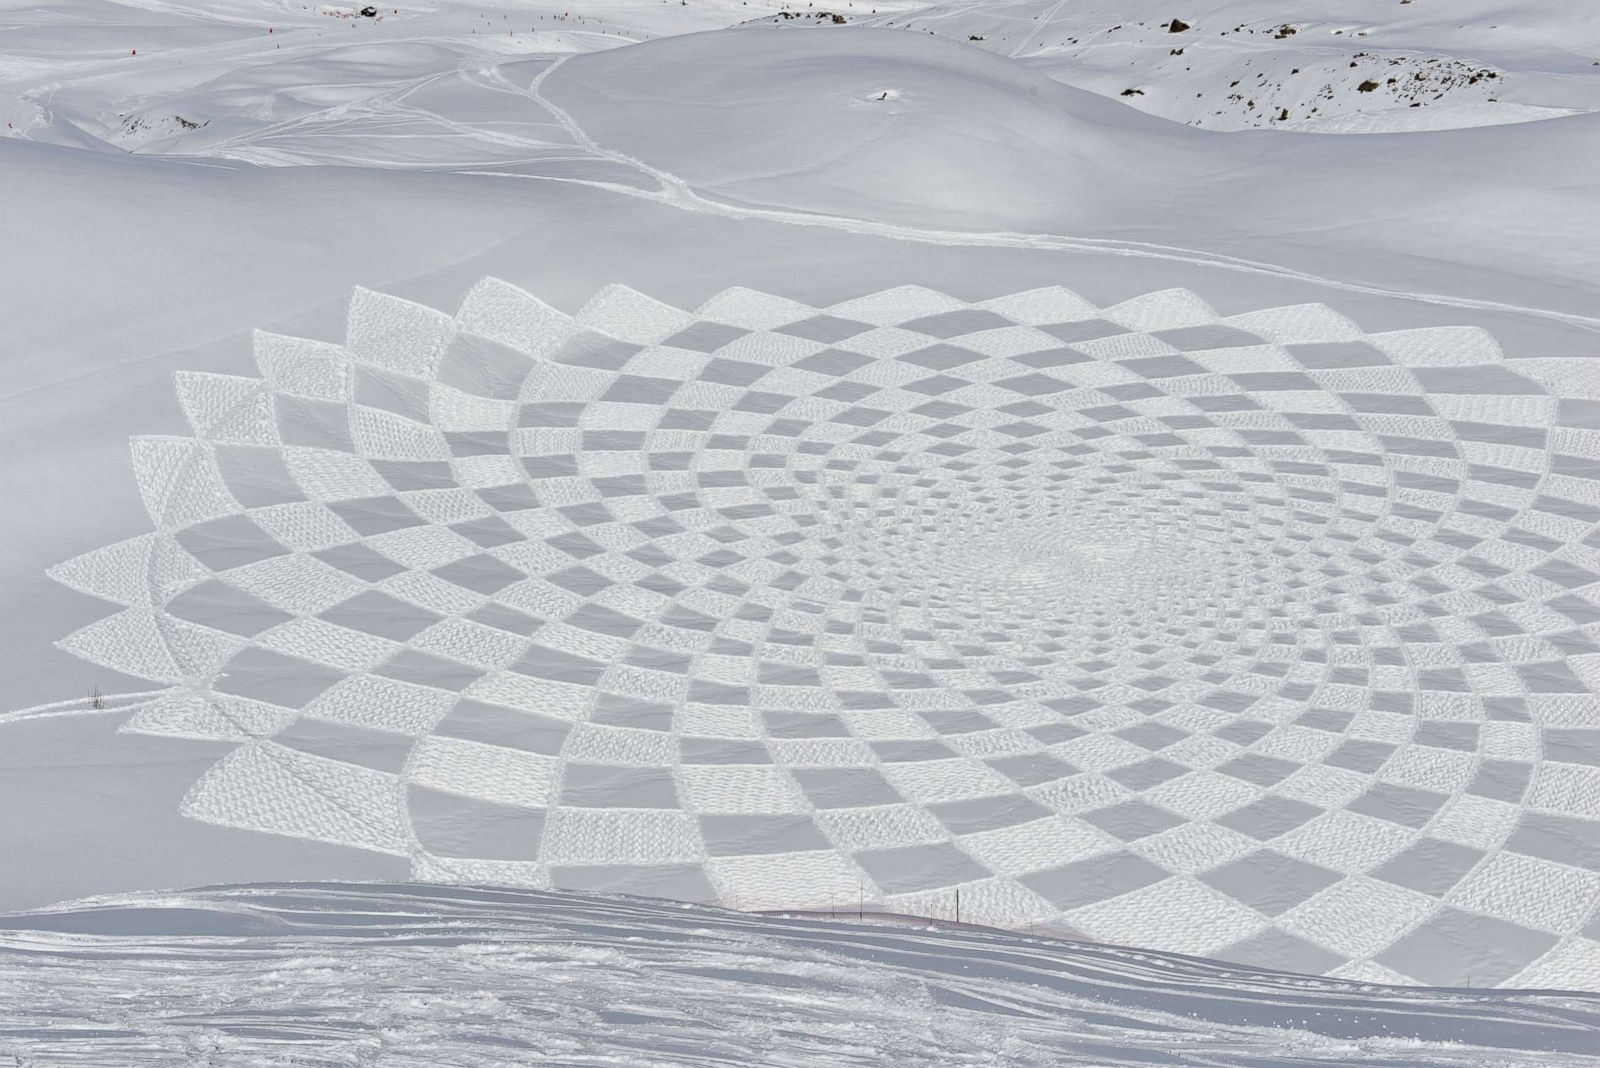 Artist creates massive murals in snow all over the world